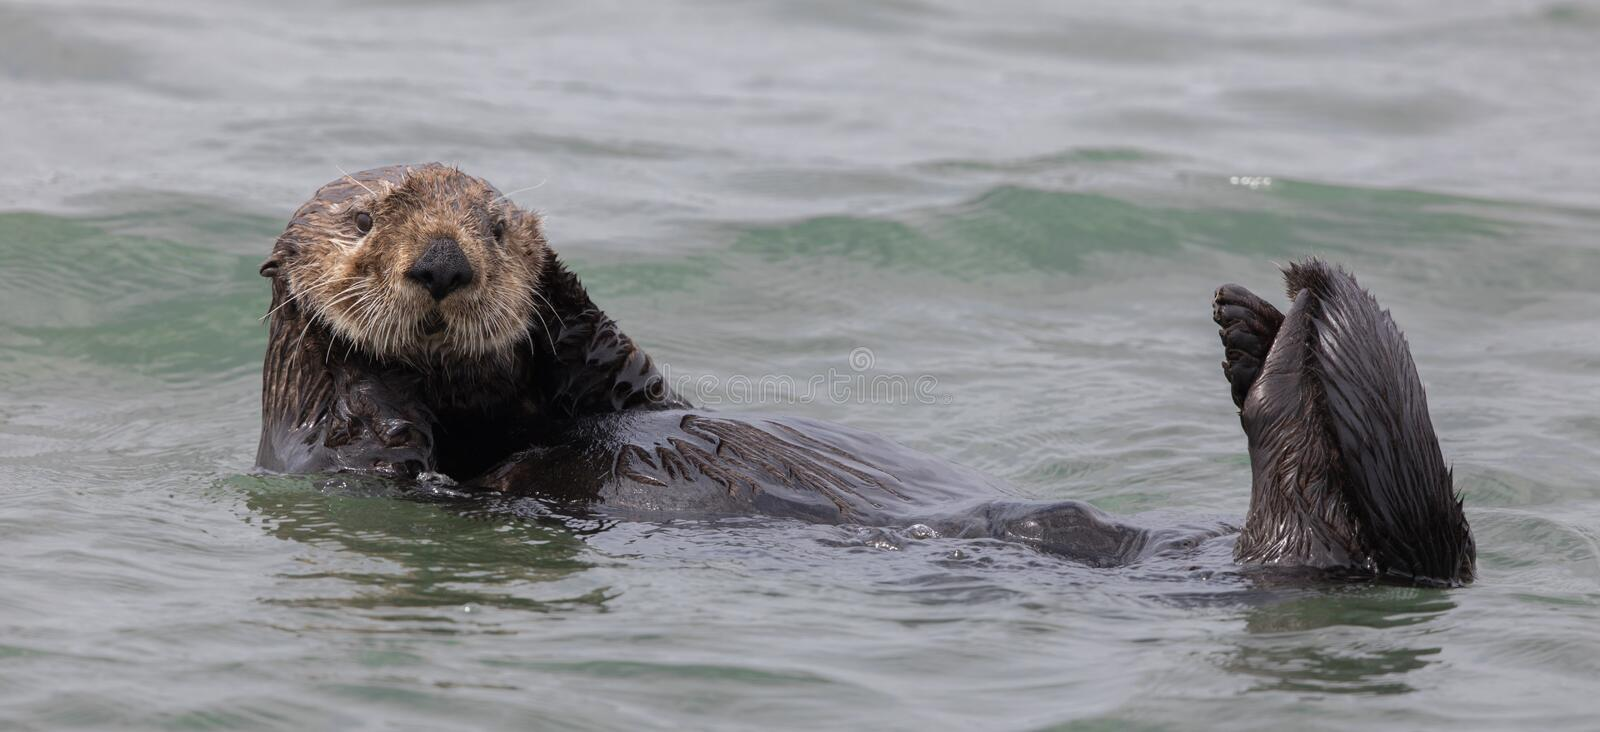 Curious Sea Otter Enhydra lutris floating in Monterey Bay of the Pacific Ocean. royalty free stock image